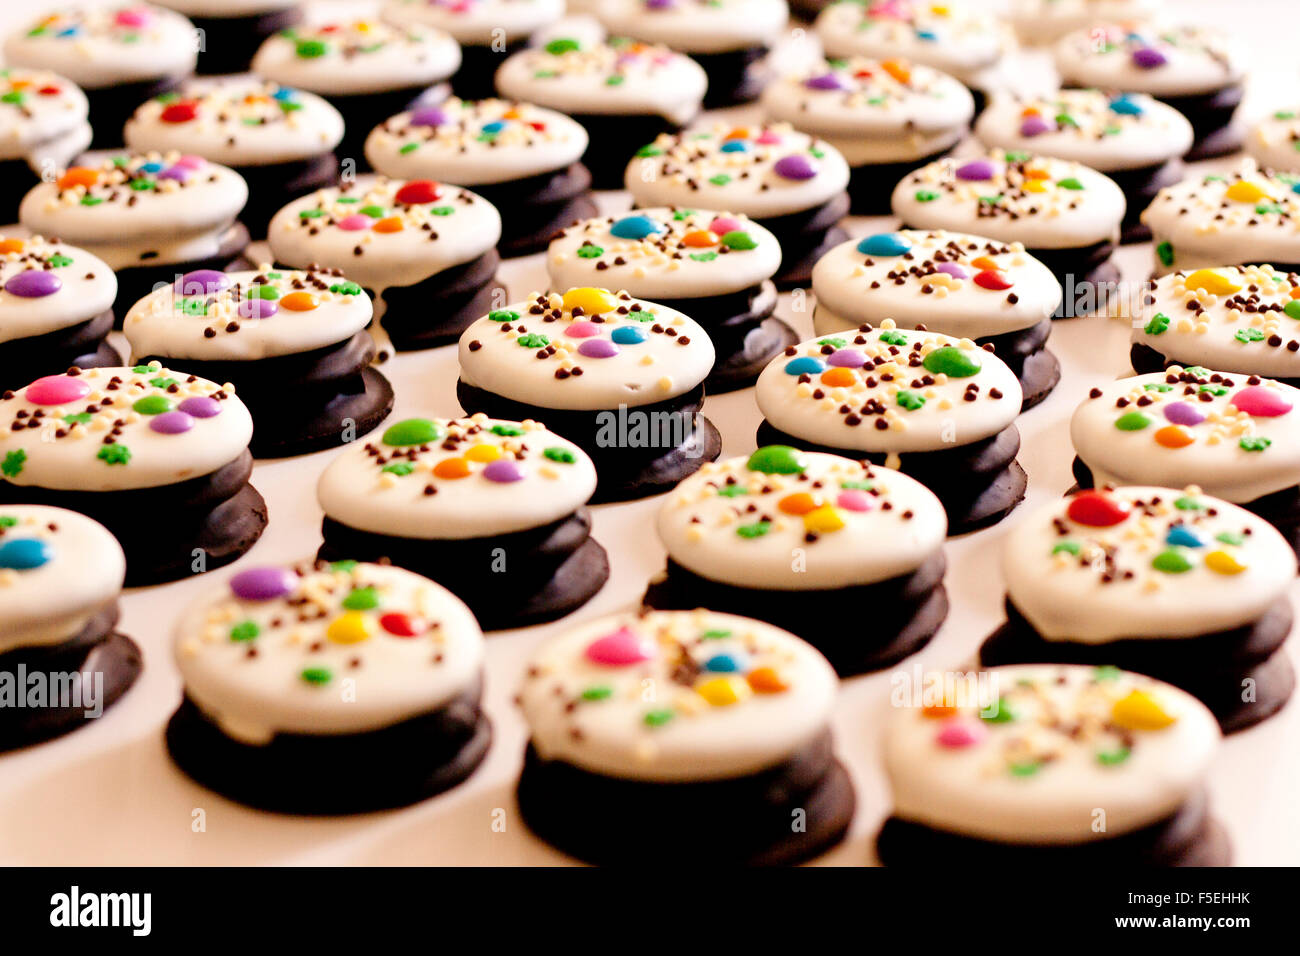 Rows of cakes - Stock Image